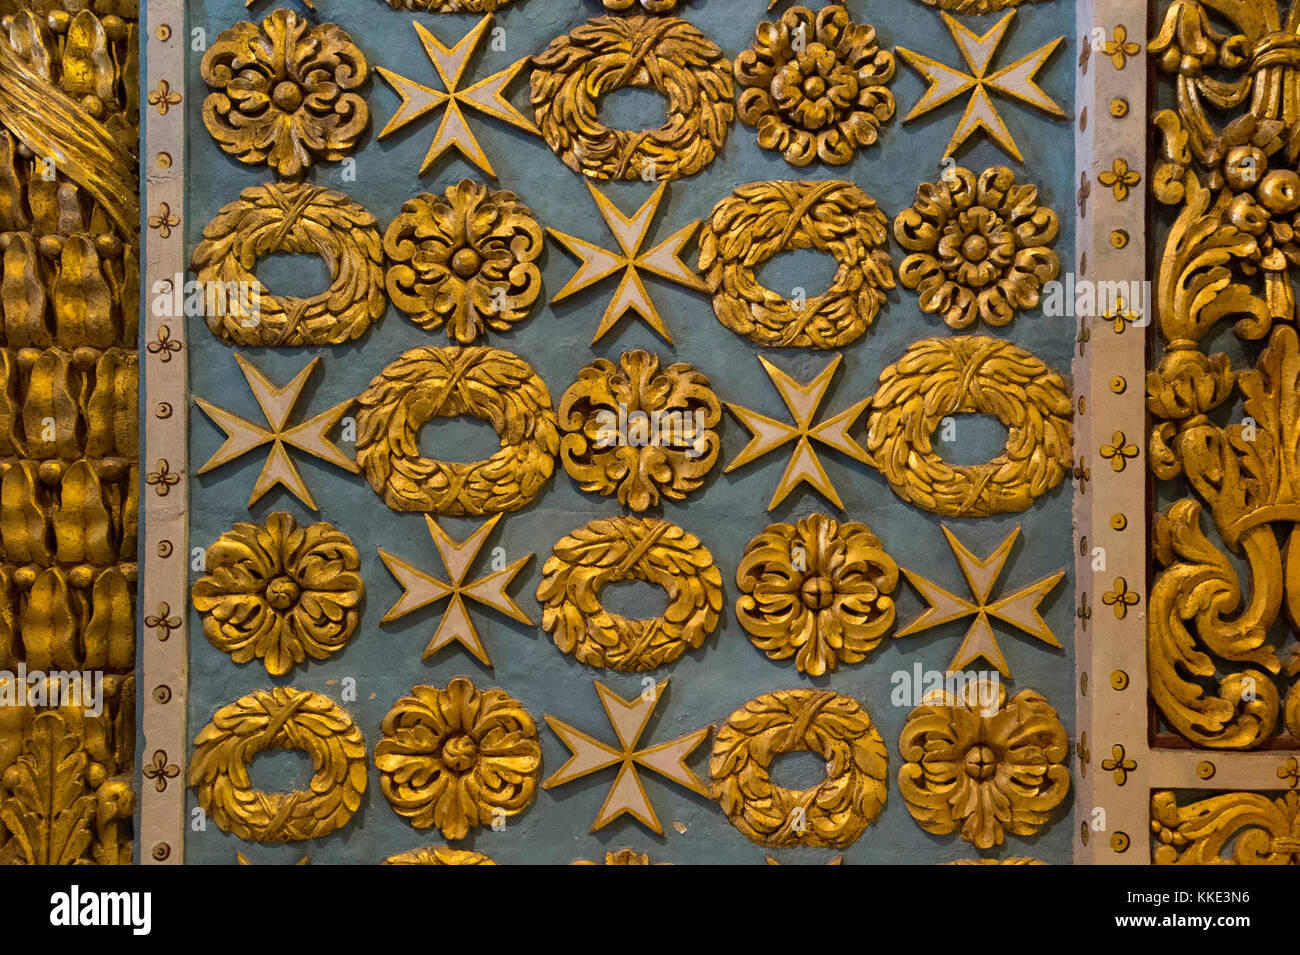 Decorated walls in the nave / interior inside of St John's Co-Cathedral. Valletta, Malta. Surface is 3 dimensional, - Stock Image